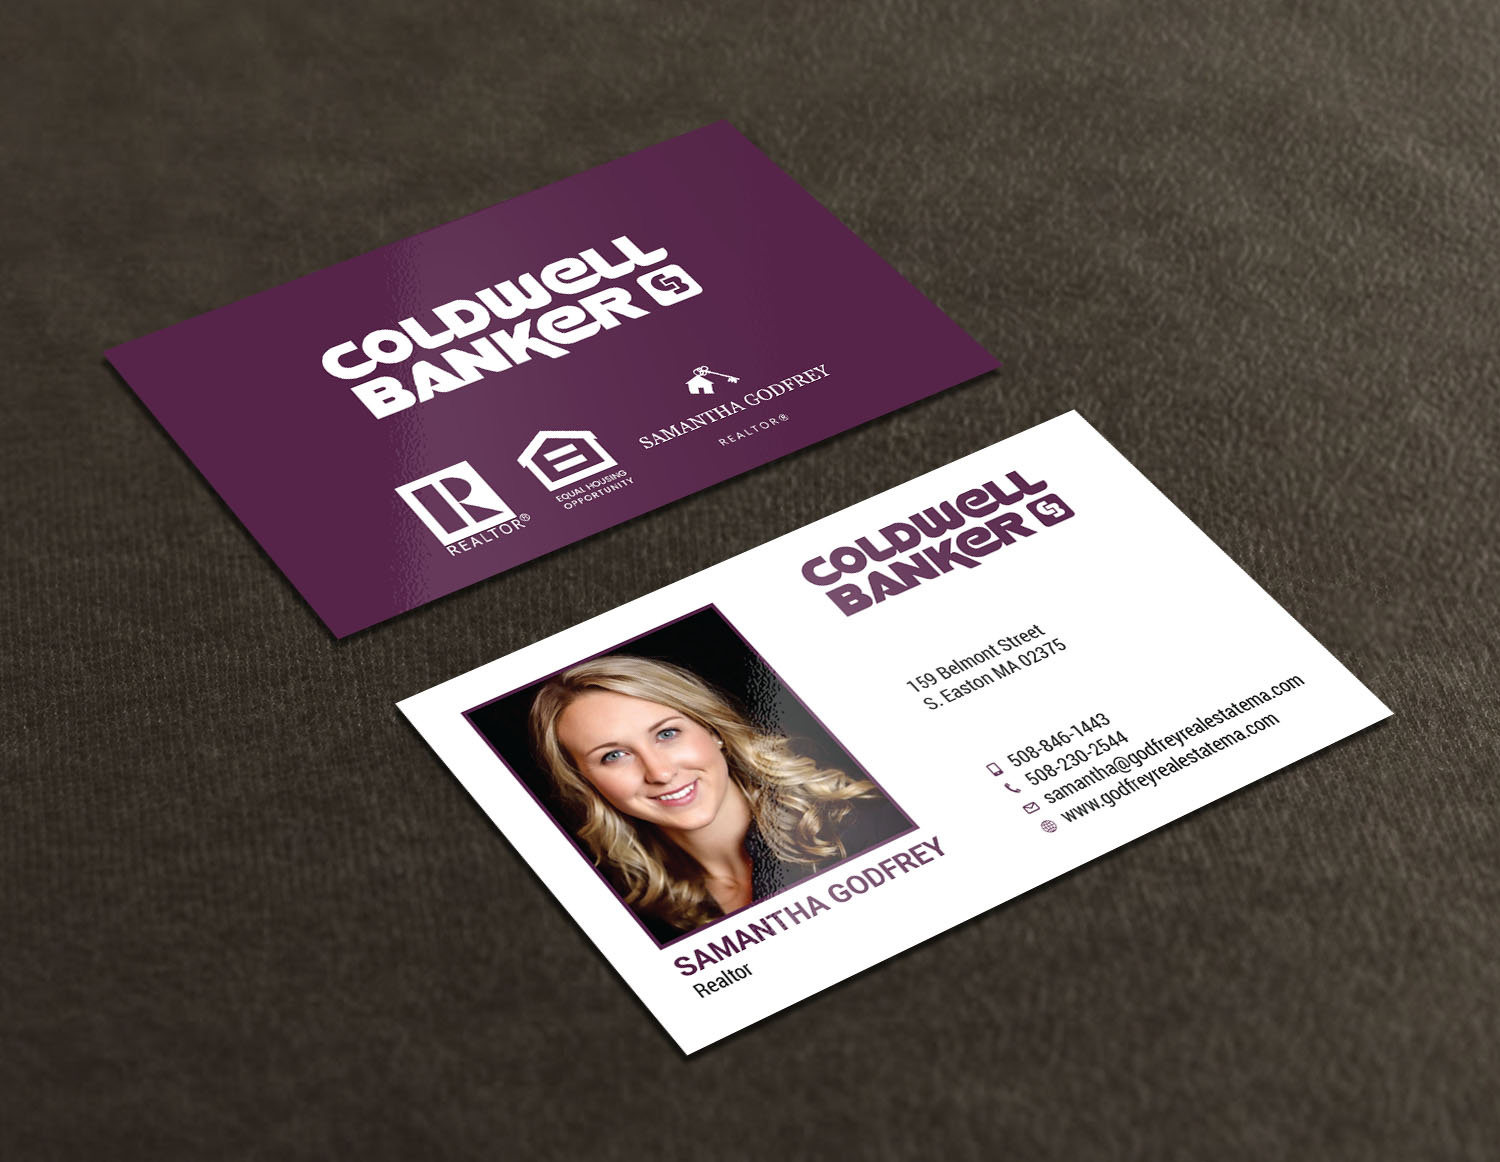 Modern professional real estate agent business card design for business card design by avanger000 for godfrey auto inc design 17847968 colourmoves